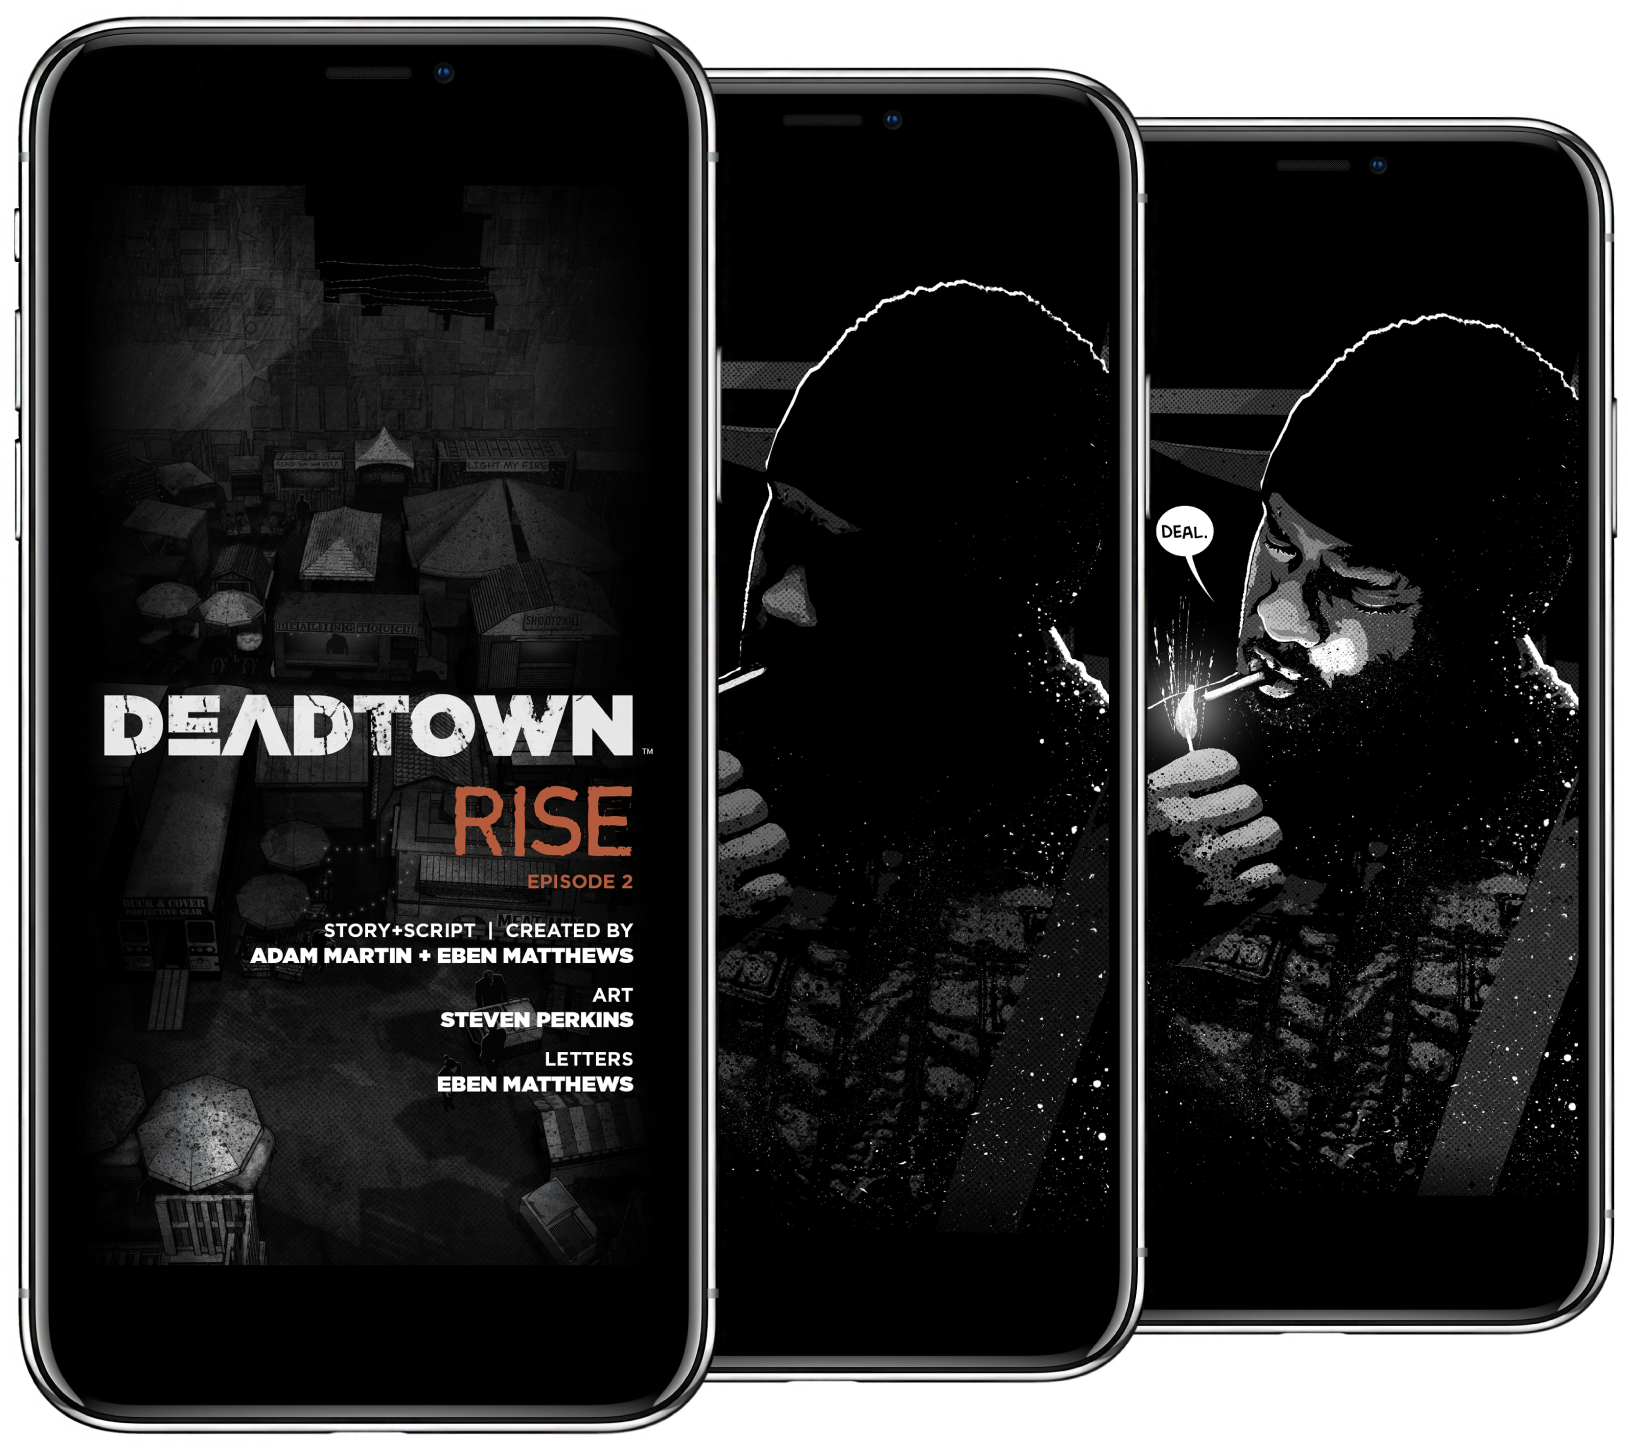 DeadTown utilizes M2's innovative Tap-through storytelling technique to create a cinematic experience